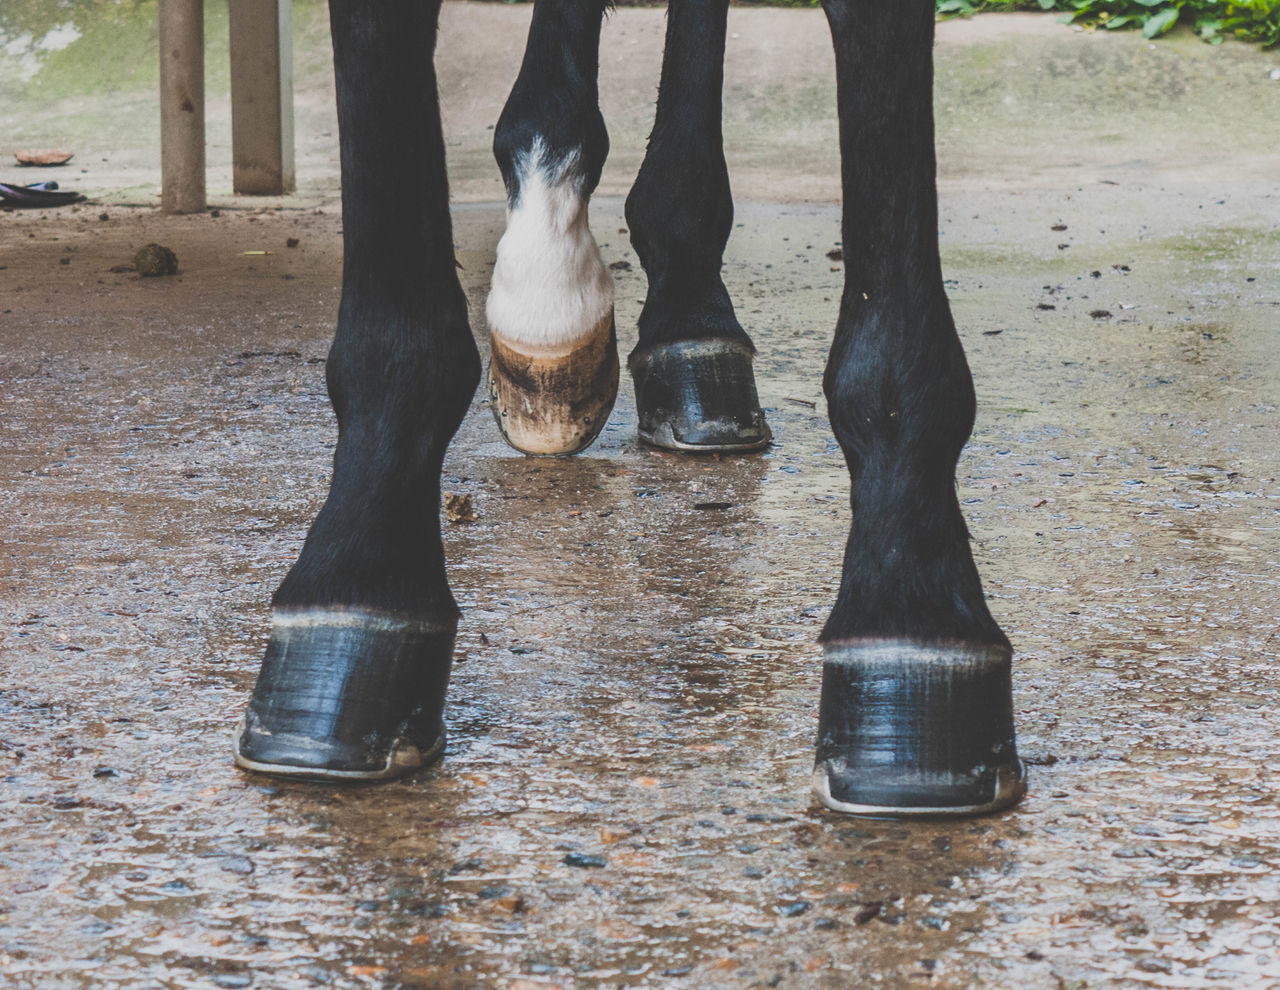 Four Legged friend A Feet Four Legged Friend Horse Horse Legs Legs Mammal Read